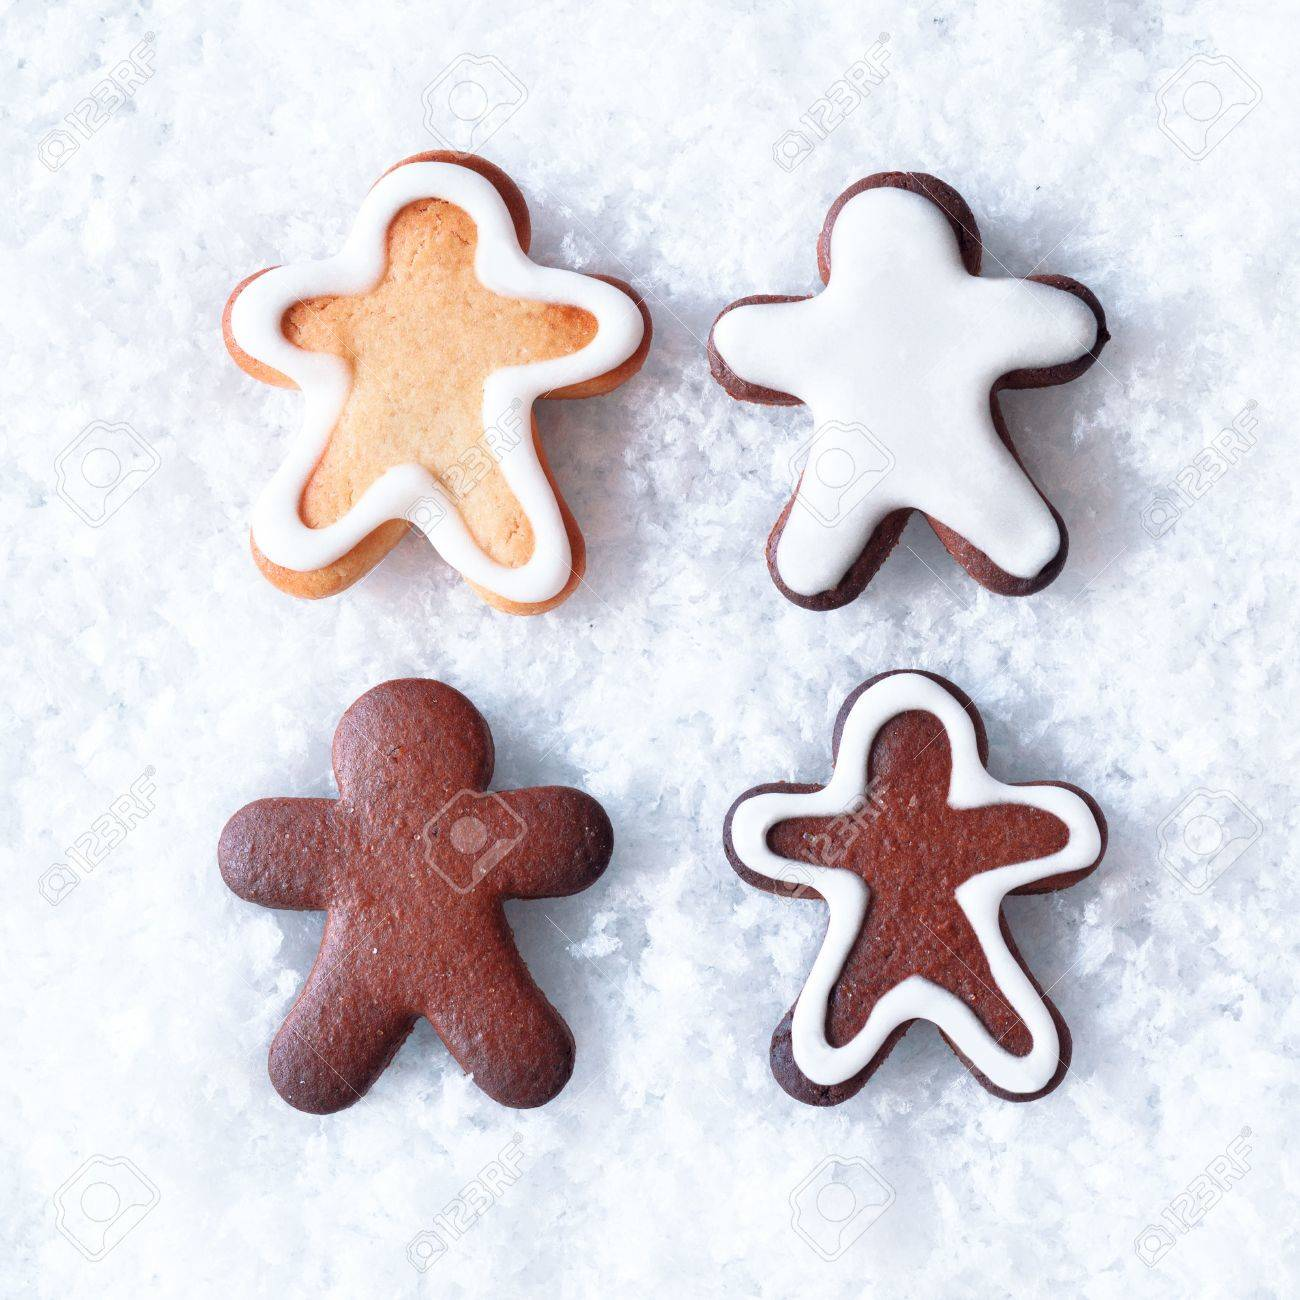 Tasty Christmas Gingerbread Men Cookies With Decorative Icing ...